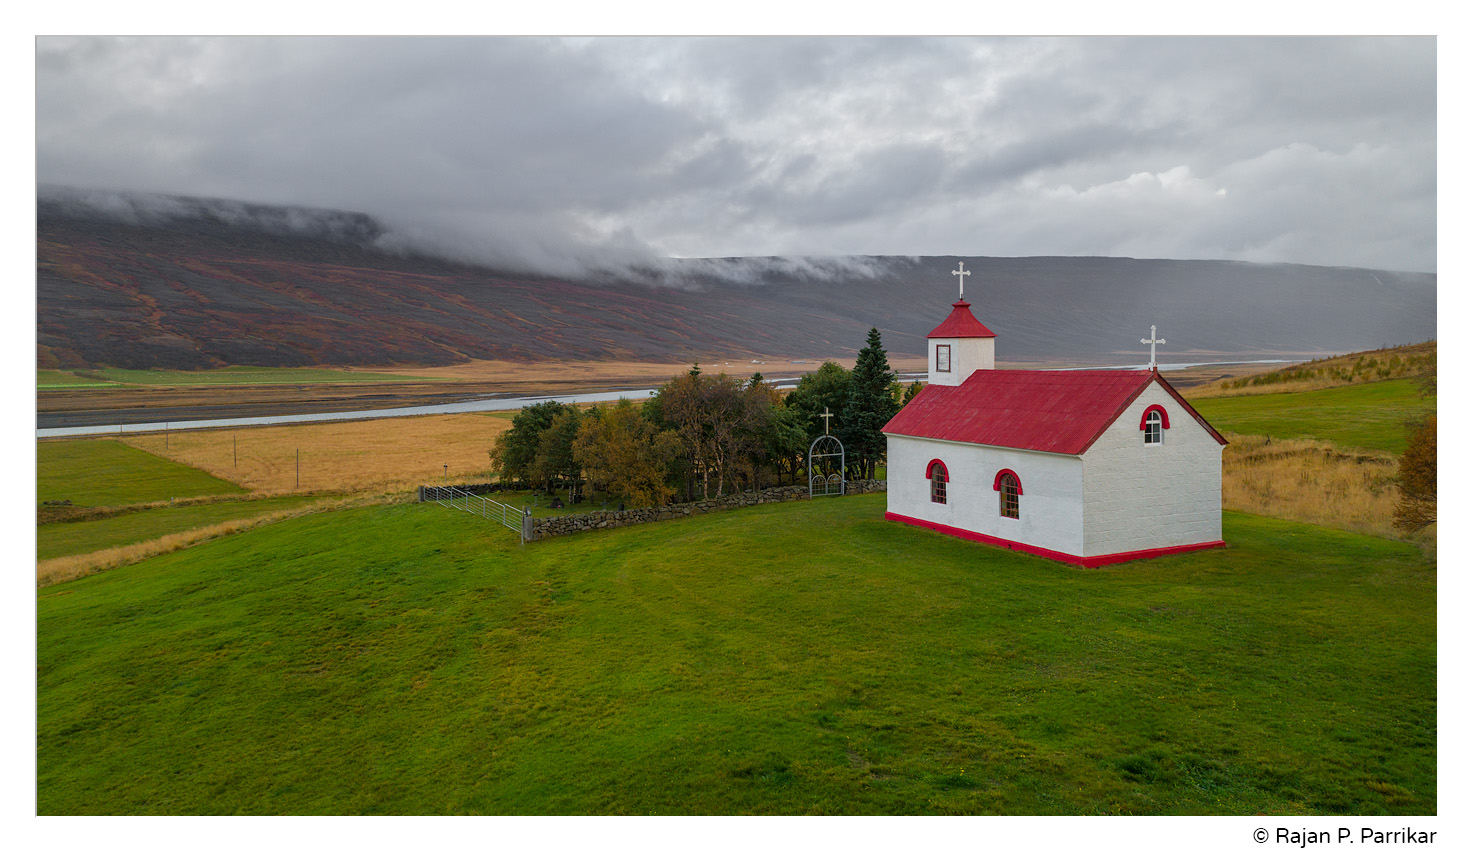 Church at Lundarbrekka in Bárðardalur, Iceland